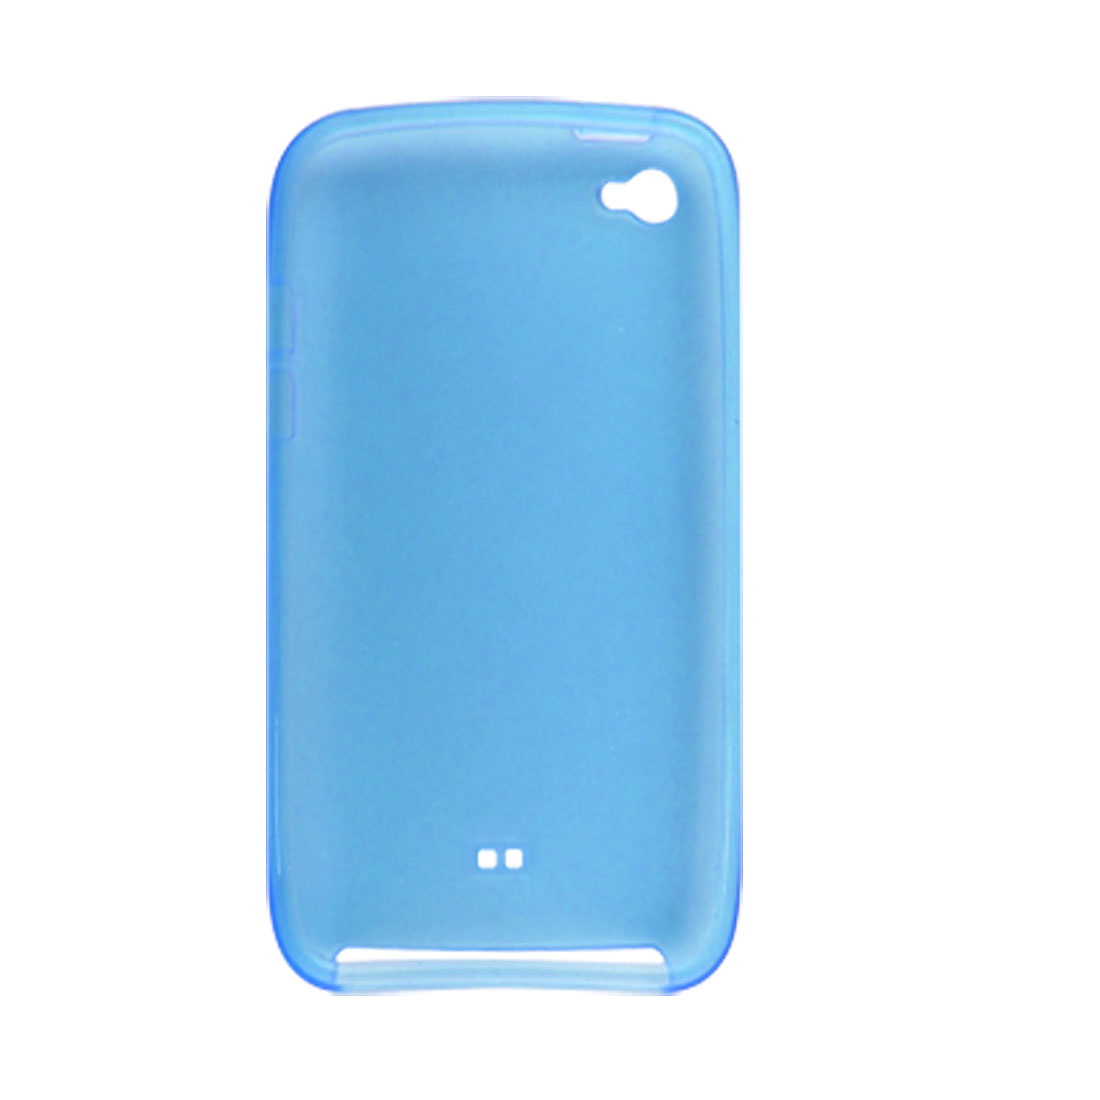 Clear Sky Blue Soft Plastic Cover Case for iPod Touch 4G